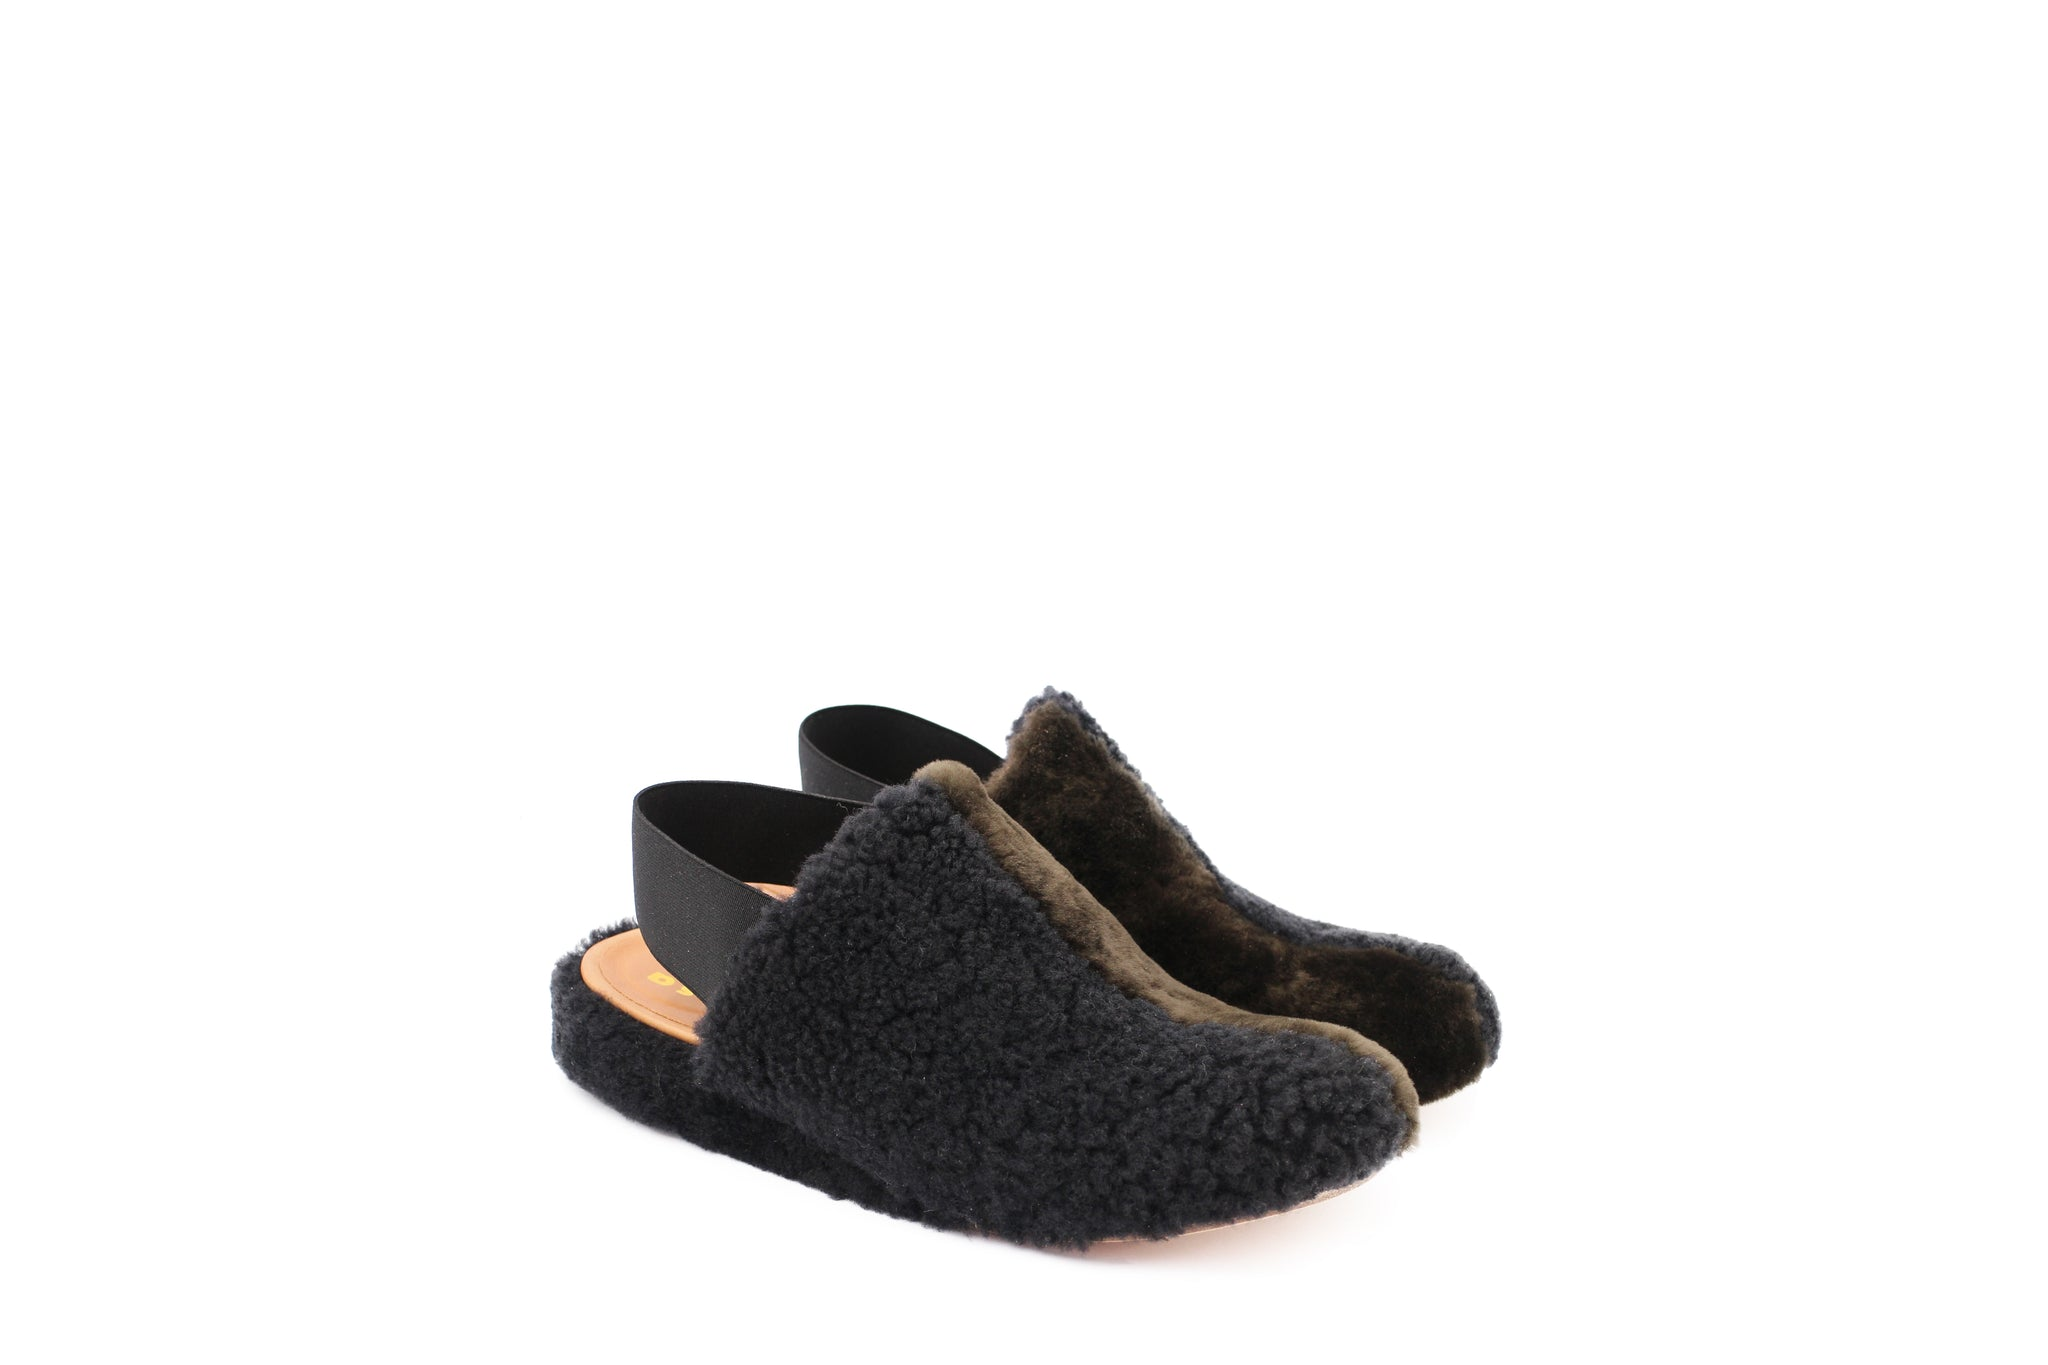 ROMA shoes in BLACK/FORESTA